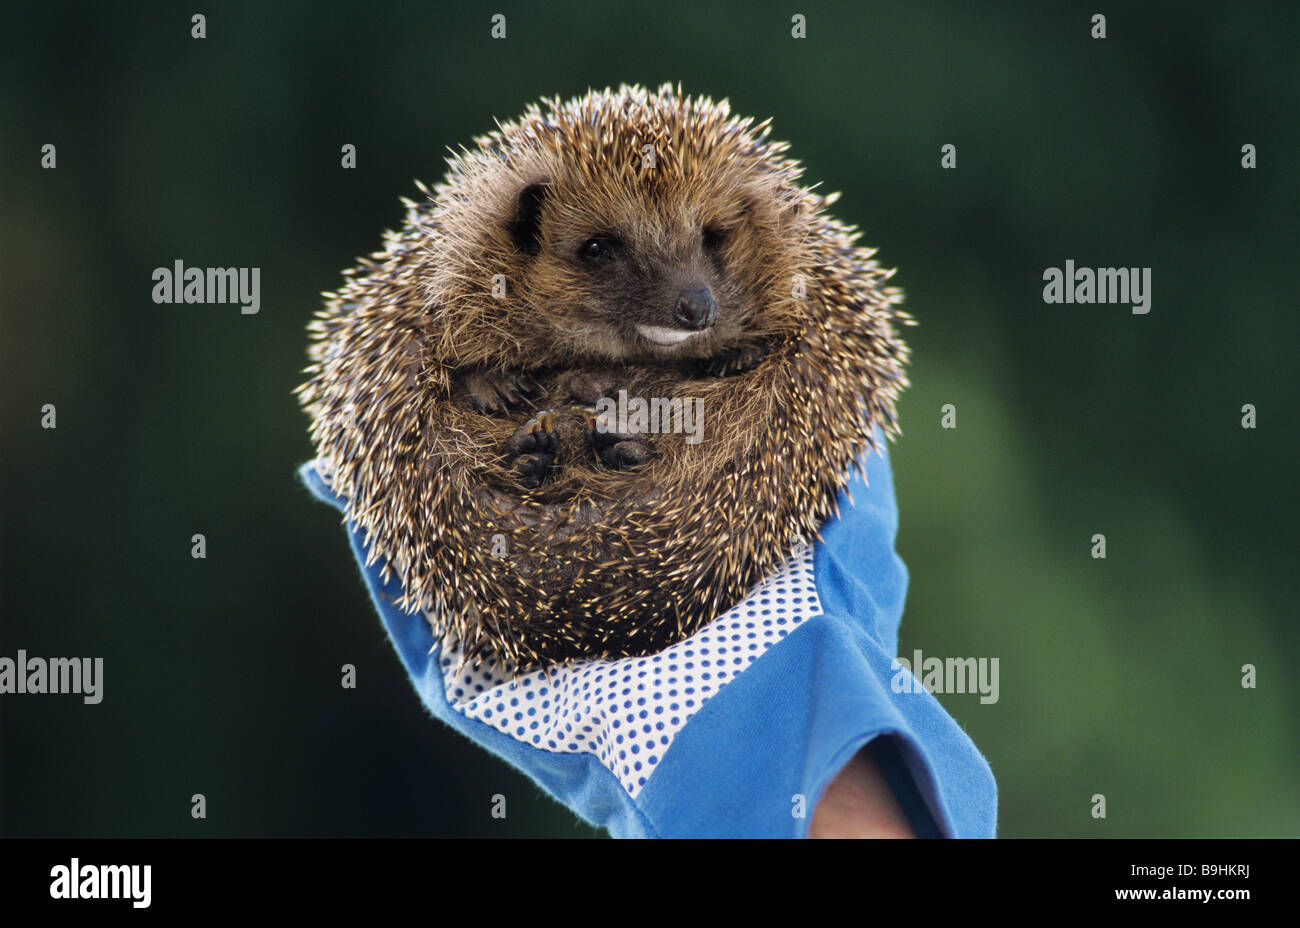 West European Hedgehog (Erinaceus europaeus), foam on its snout, held by a gloved hand - Stock Image